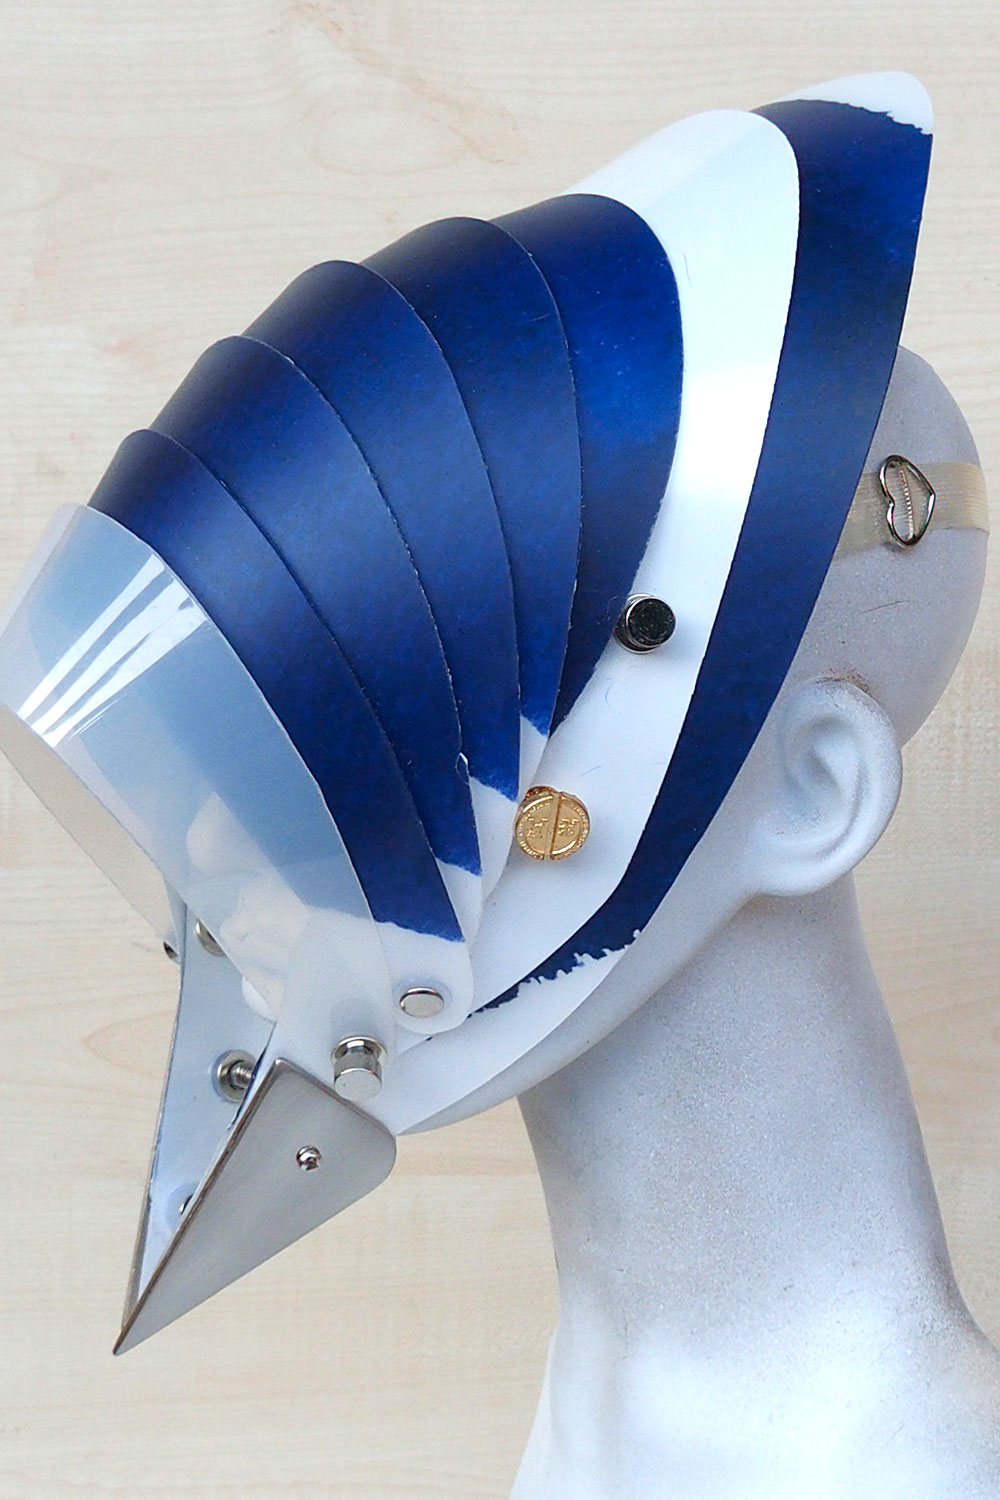 futuristic head wear in entertainment article, wearable art, cobalt blue white